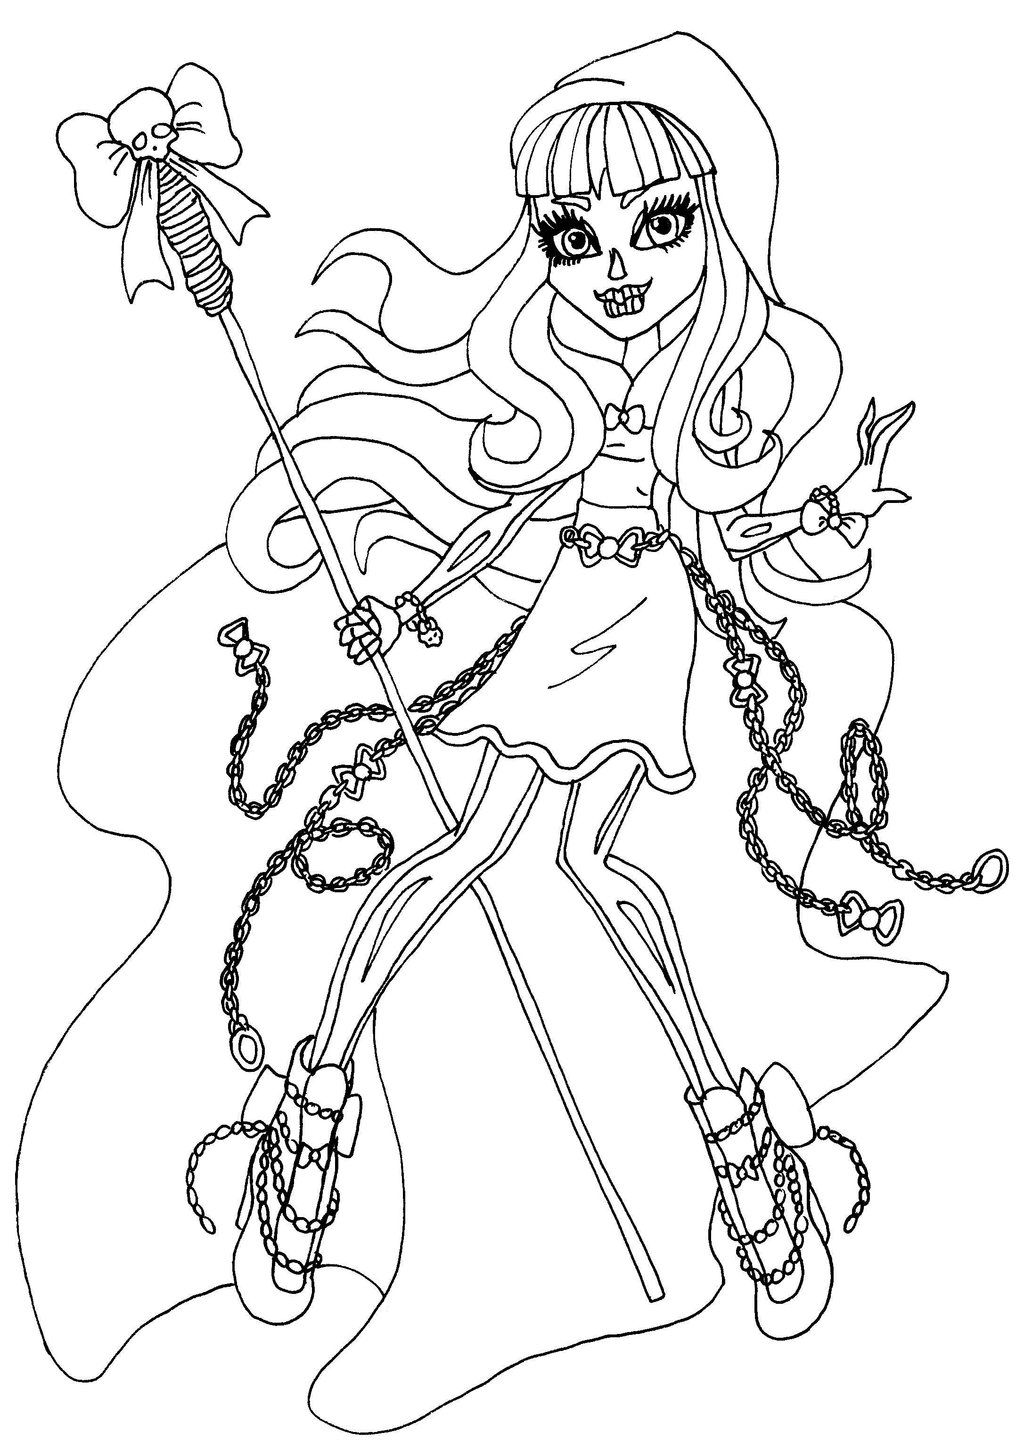 monster high coloring pages 14printablecoloring pages - Monster High Coloring Pages